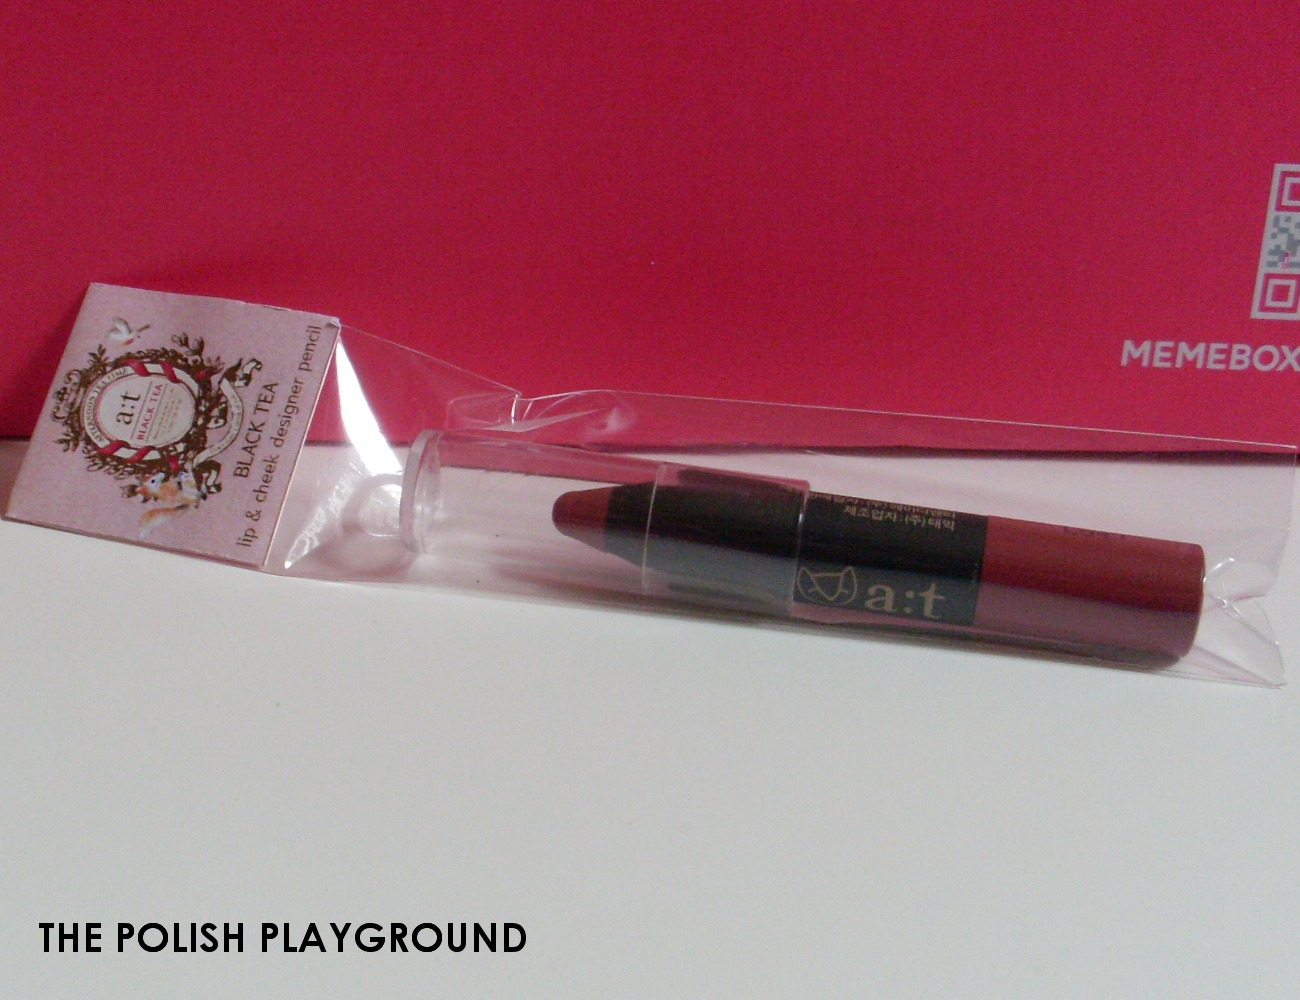 Memebox Global #14 Unboxing - a;t fox Fantasy Holic Lip & Cheek Designer Pencil in 03 Rose Beige